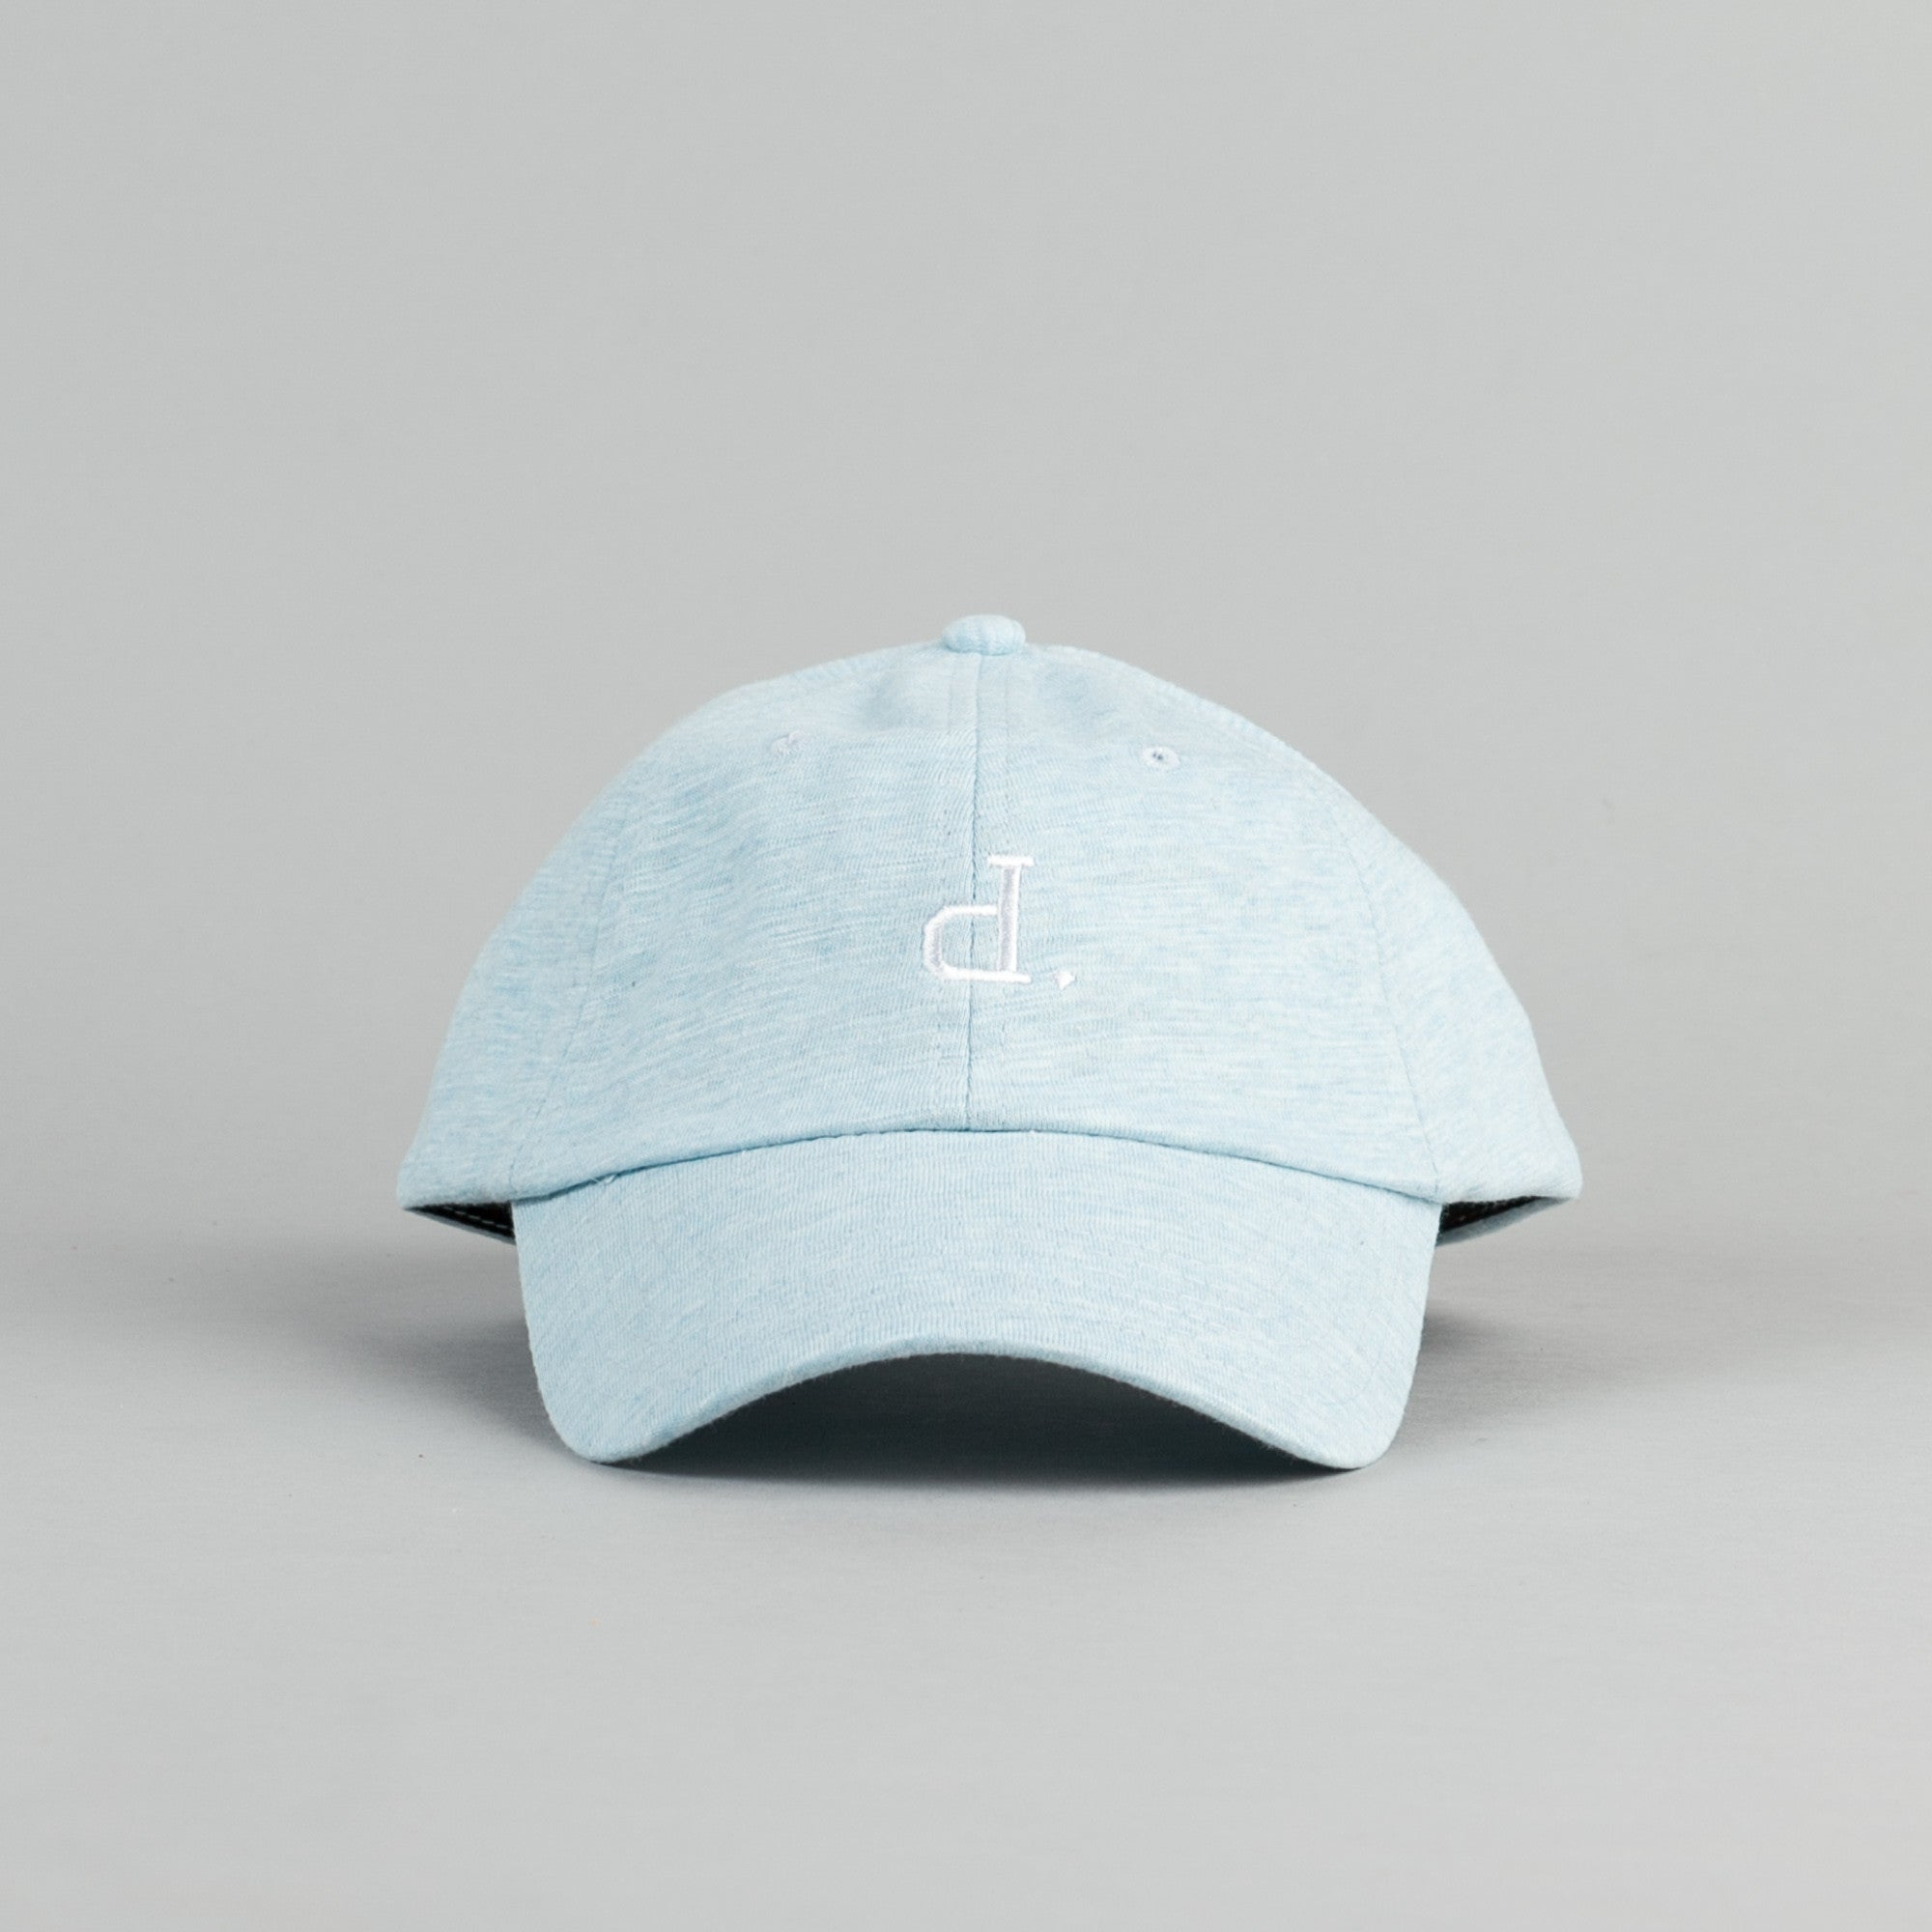 Diamond Un-Polo Sports Strapback Cap - Heather Blue